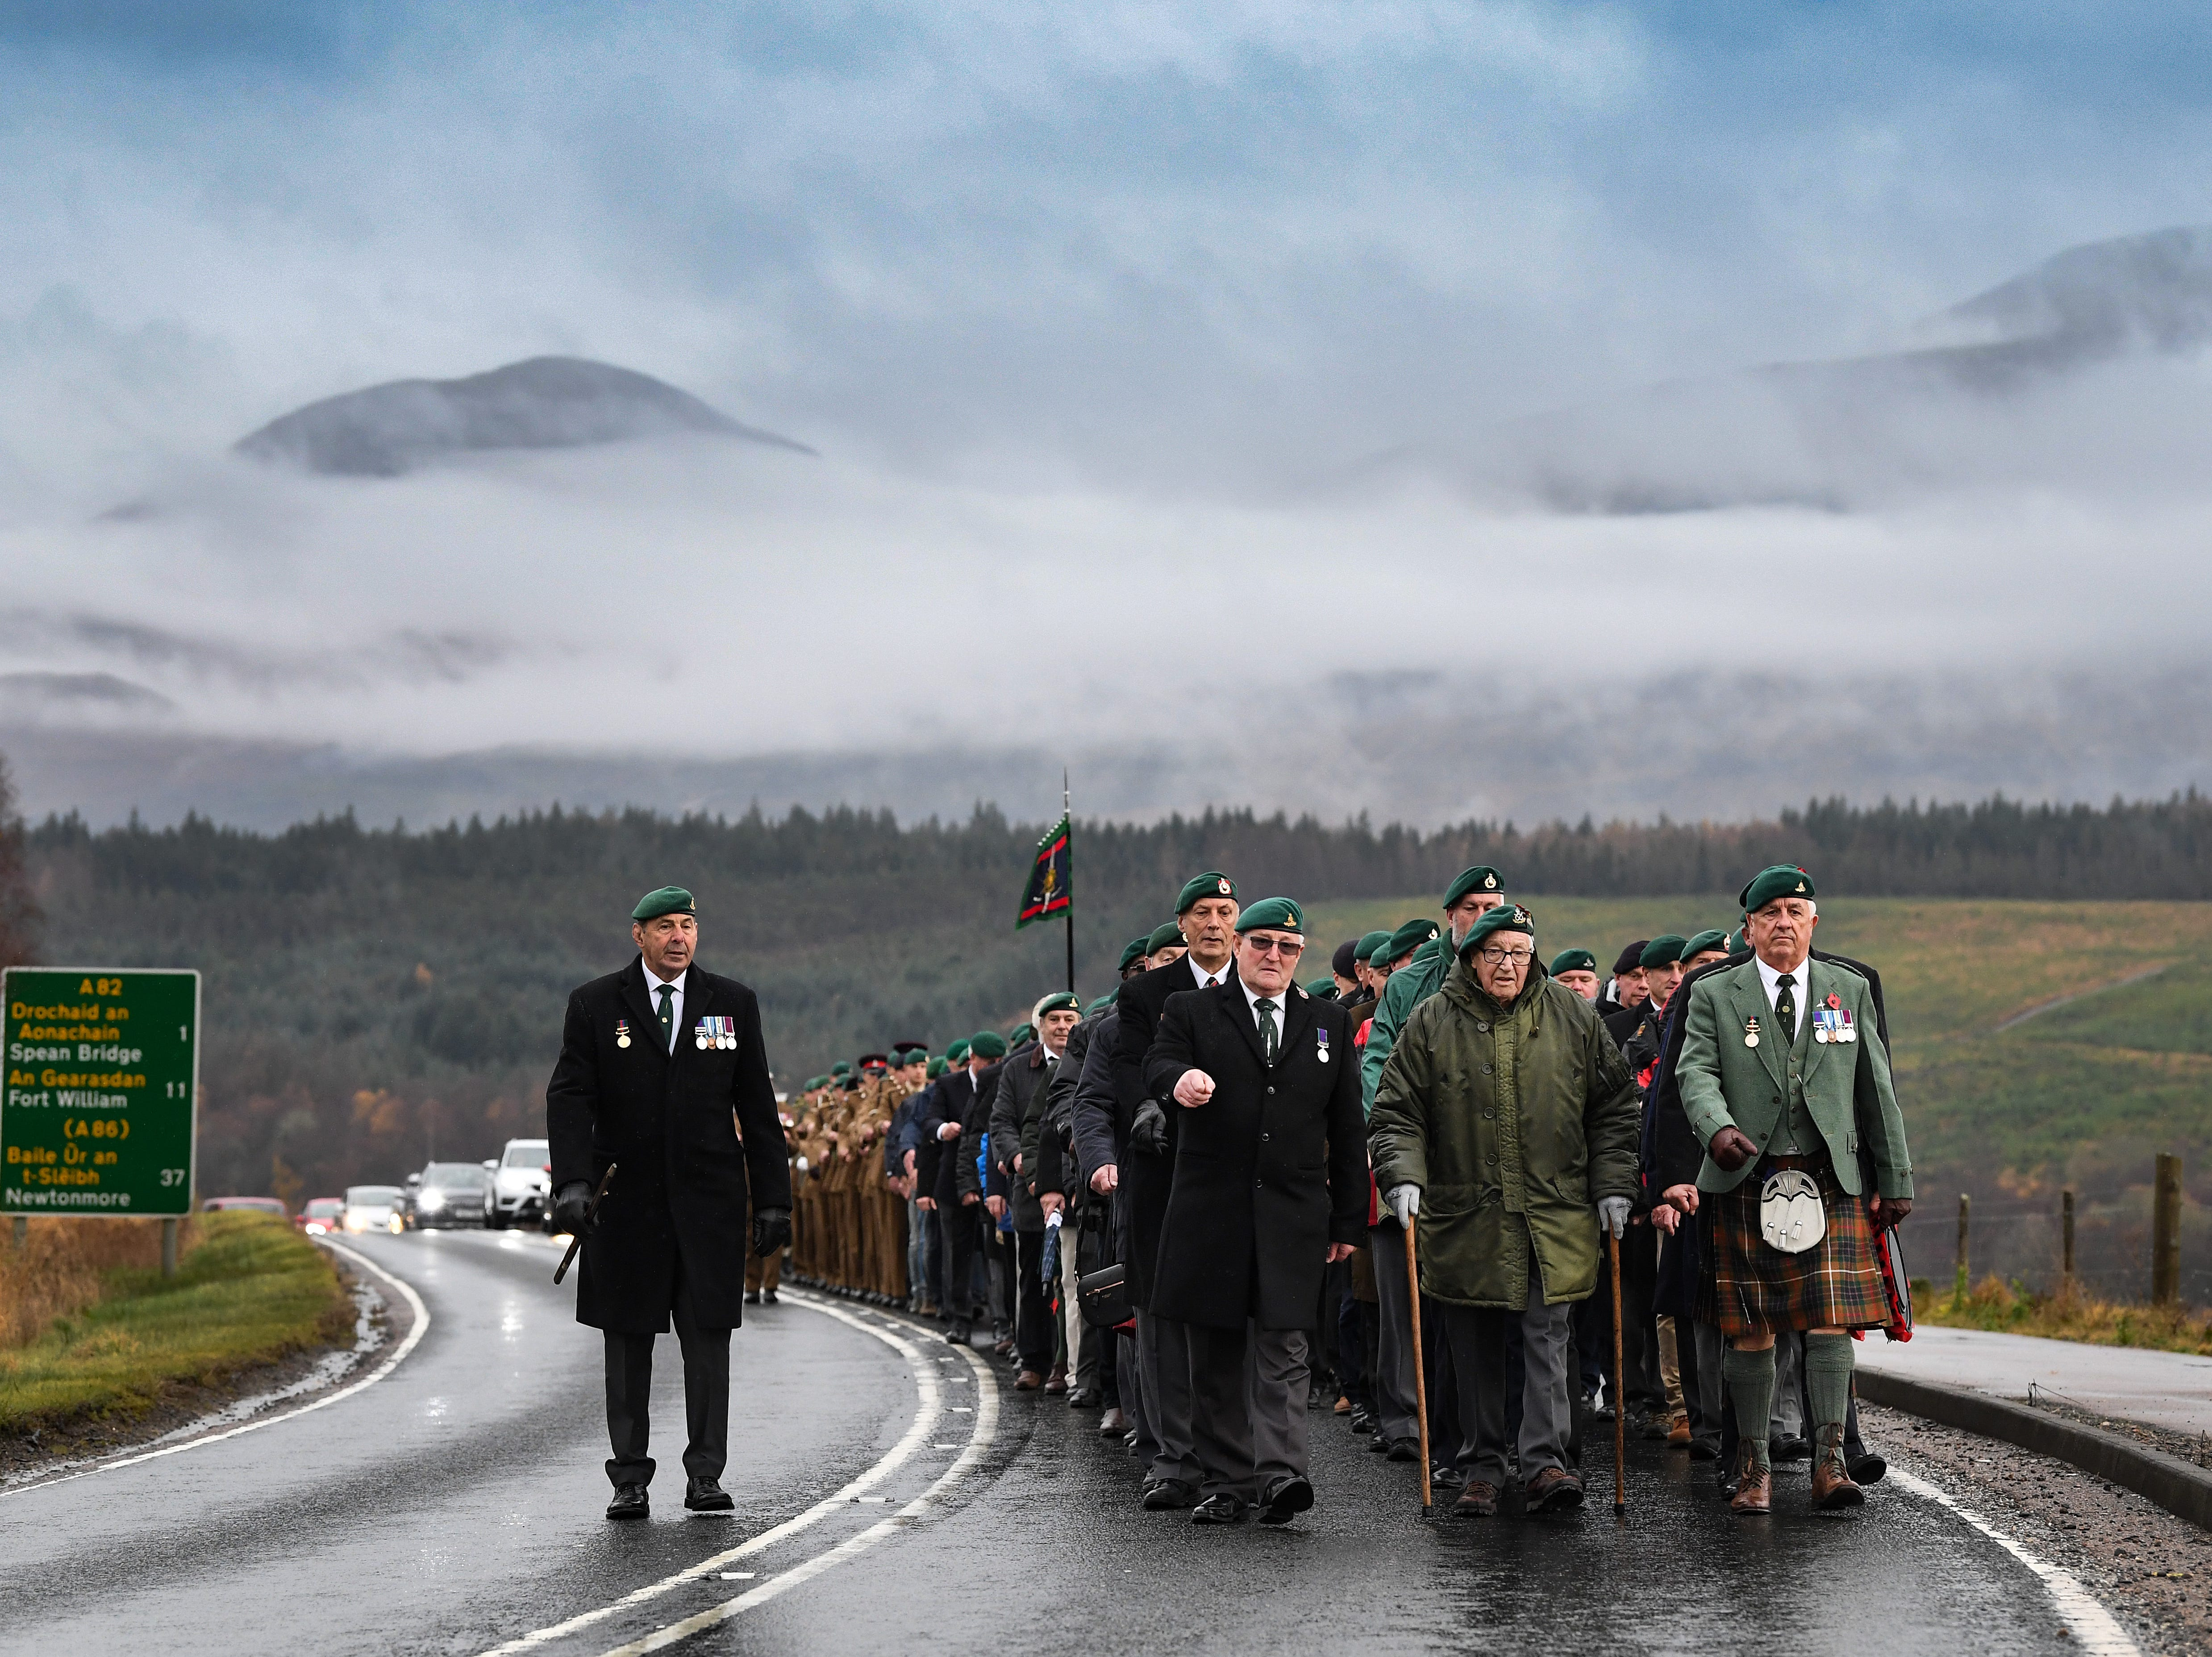 Serving and former commandos gather during the Commando Memorial Service to commemorate the sacrifice of service men and women who fought in the two World Wars and subsequent conflicts  on Nov. 11, 2018 in Spean Bridge, Scotland. The armistice ending the First World War between the Allies and Germany was signed at Compiegne, France on the 11th hour of the 11th day of the 11th month at 11 a.m. in 1918. This day is commemorated as Remembrance Day, with special attention being paid for this year's centenary.